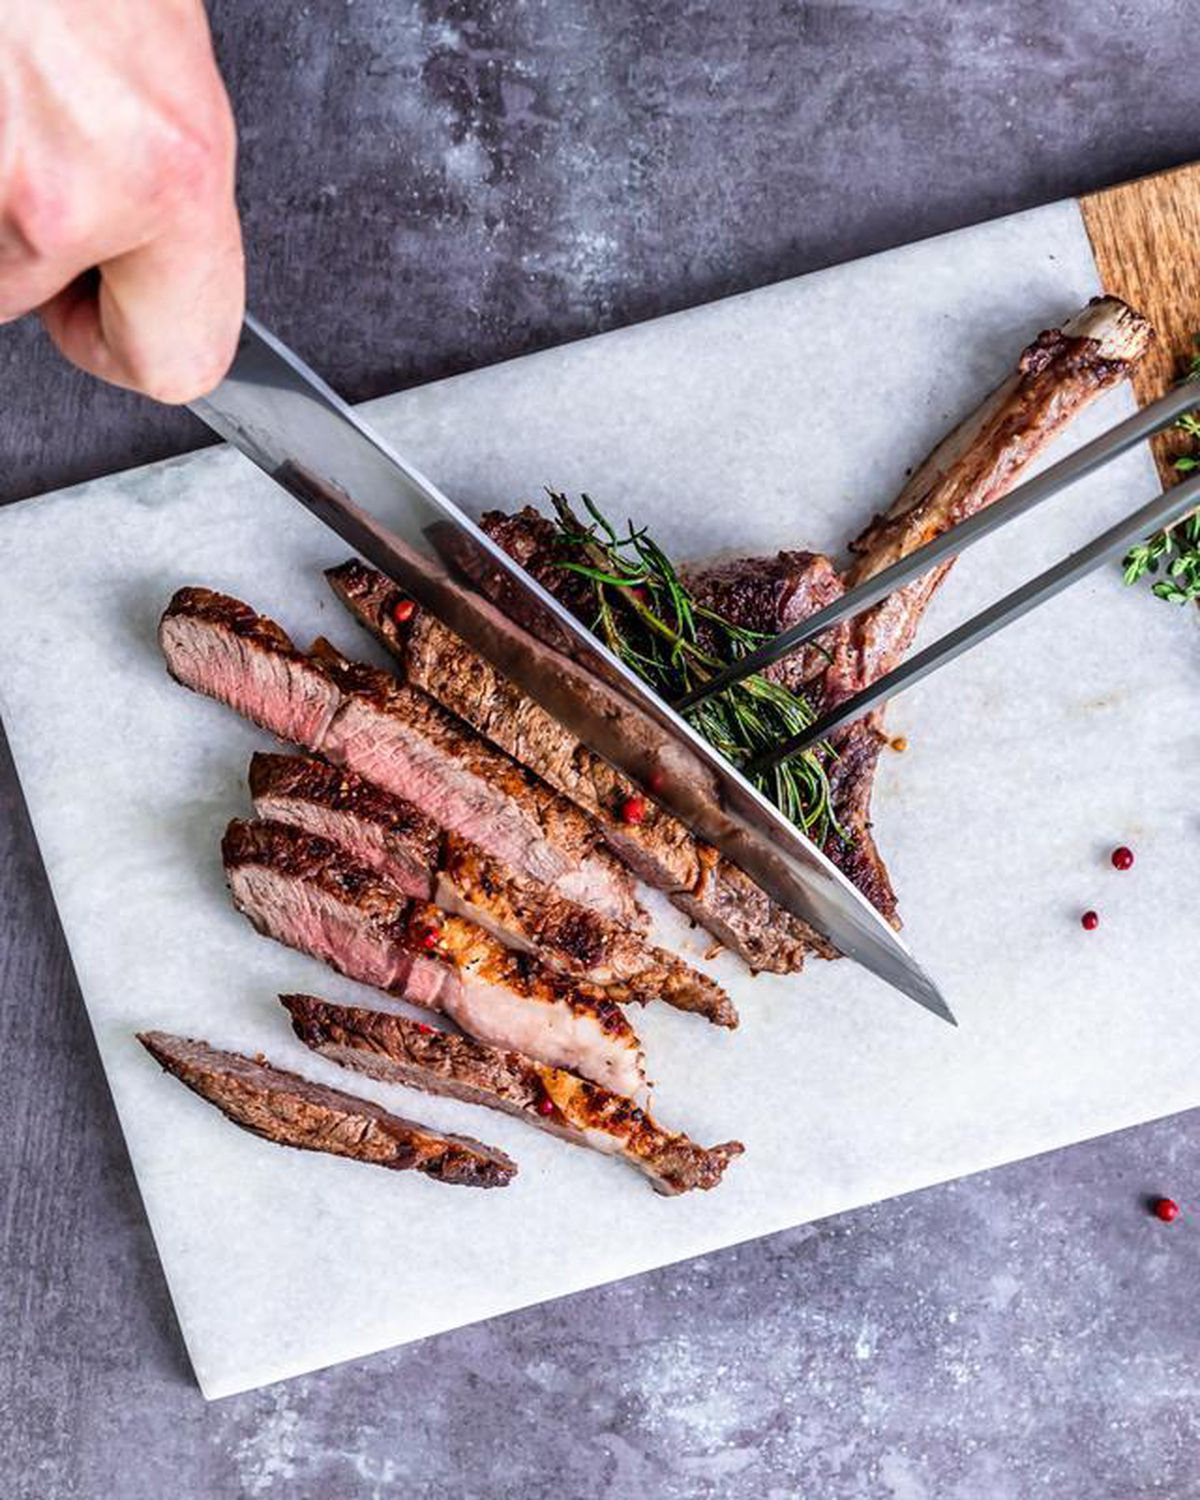 There's a butchery, as well as pop-in-the-oven meals